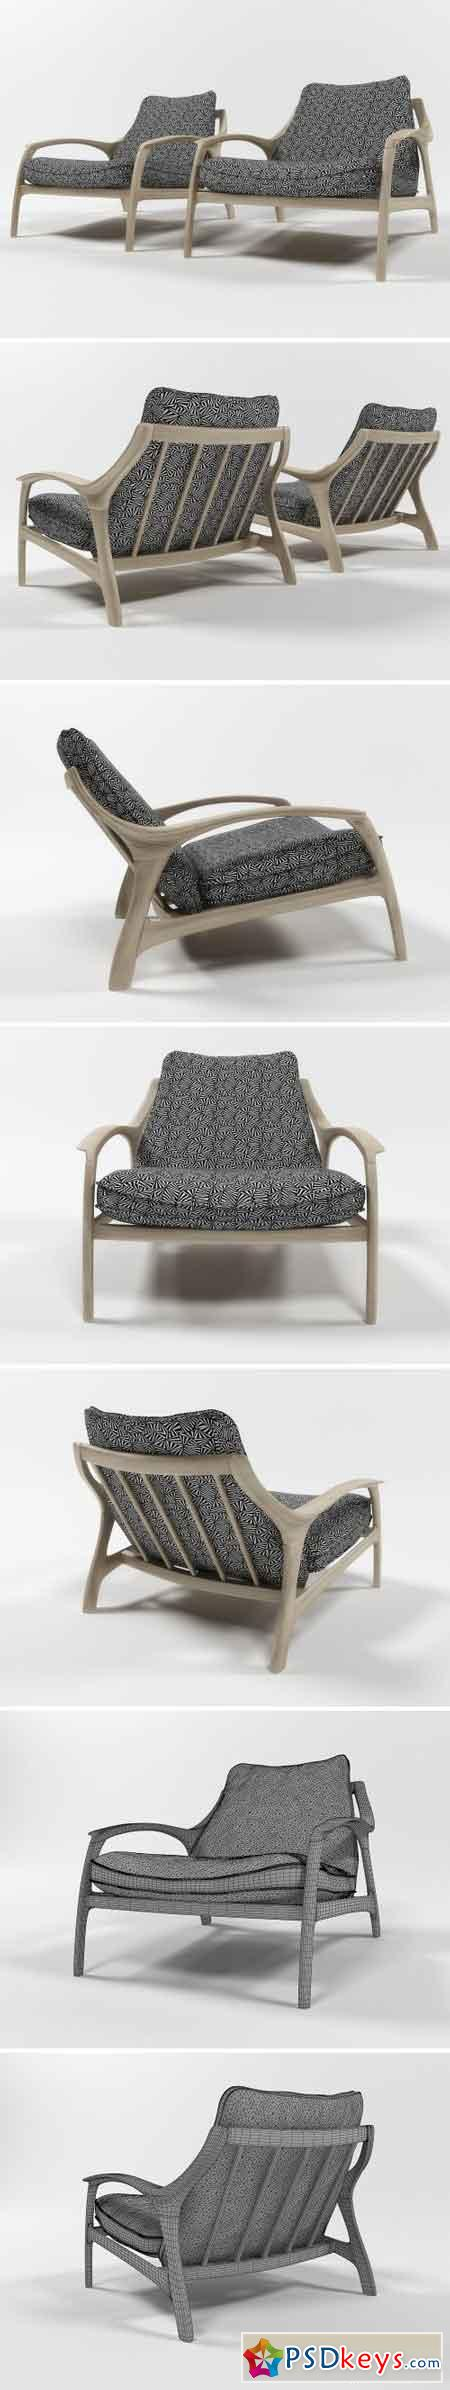 Sequilla armchair by inDahouze 1602657